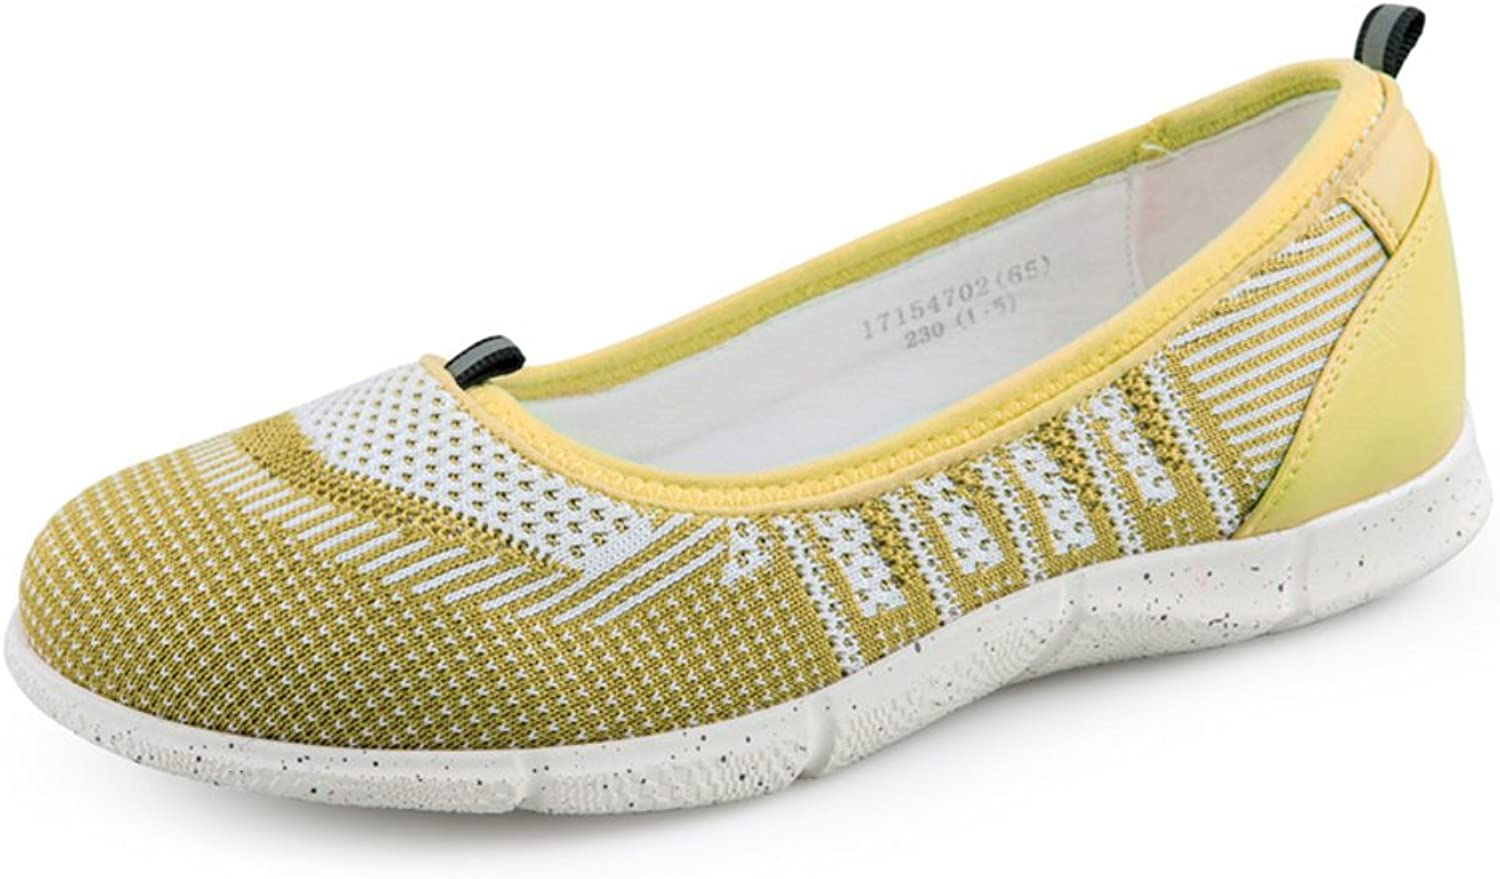 RXL Springaa and and and Autumn, Splice, Andable, Mamma skor  Leisure Thin skor  100% autentisk